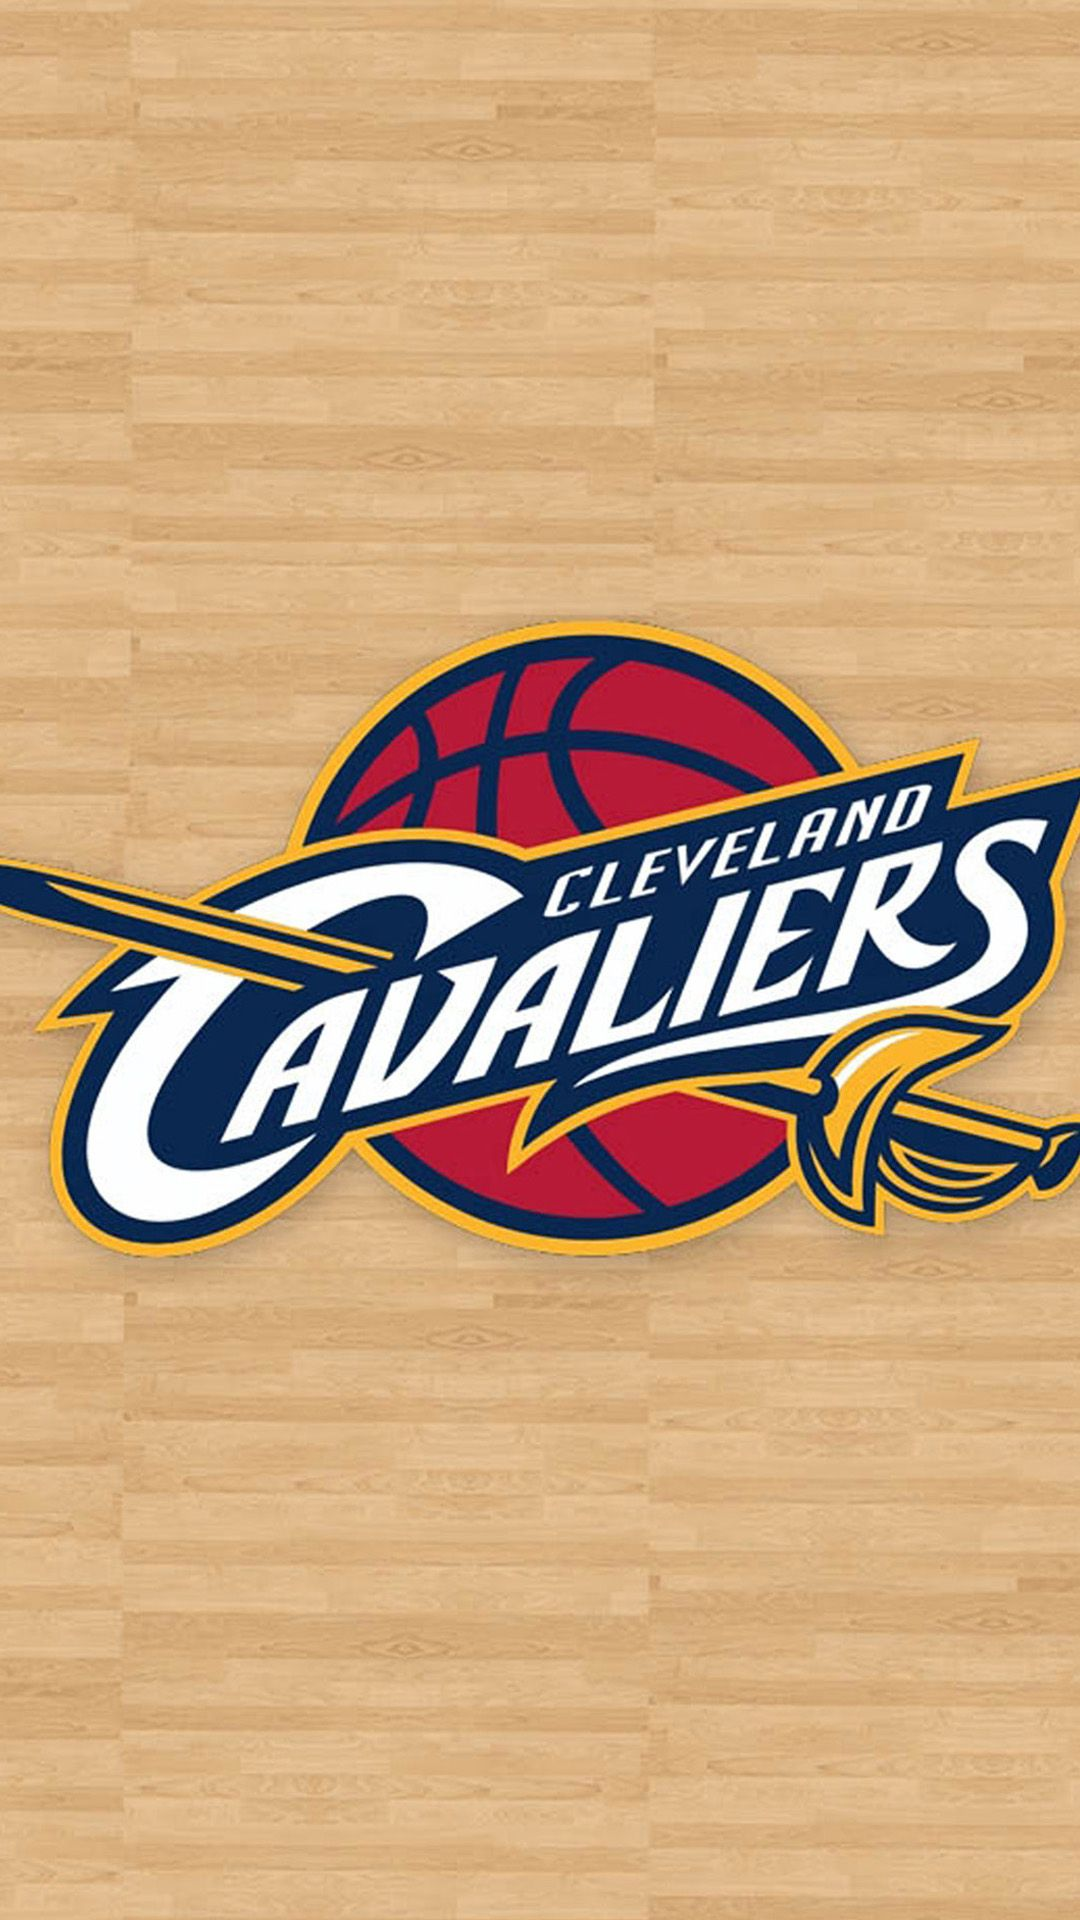 Cleveland Cavaliers Best Htc One Wallpapers Cavs Wallpaper Cavaliers Wallpaper Sports Wallpapers